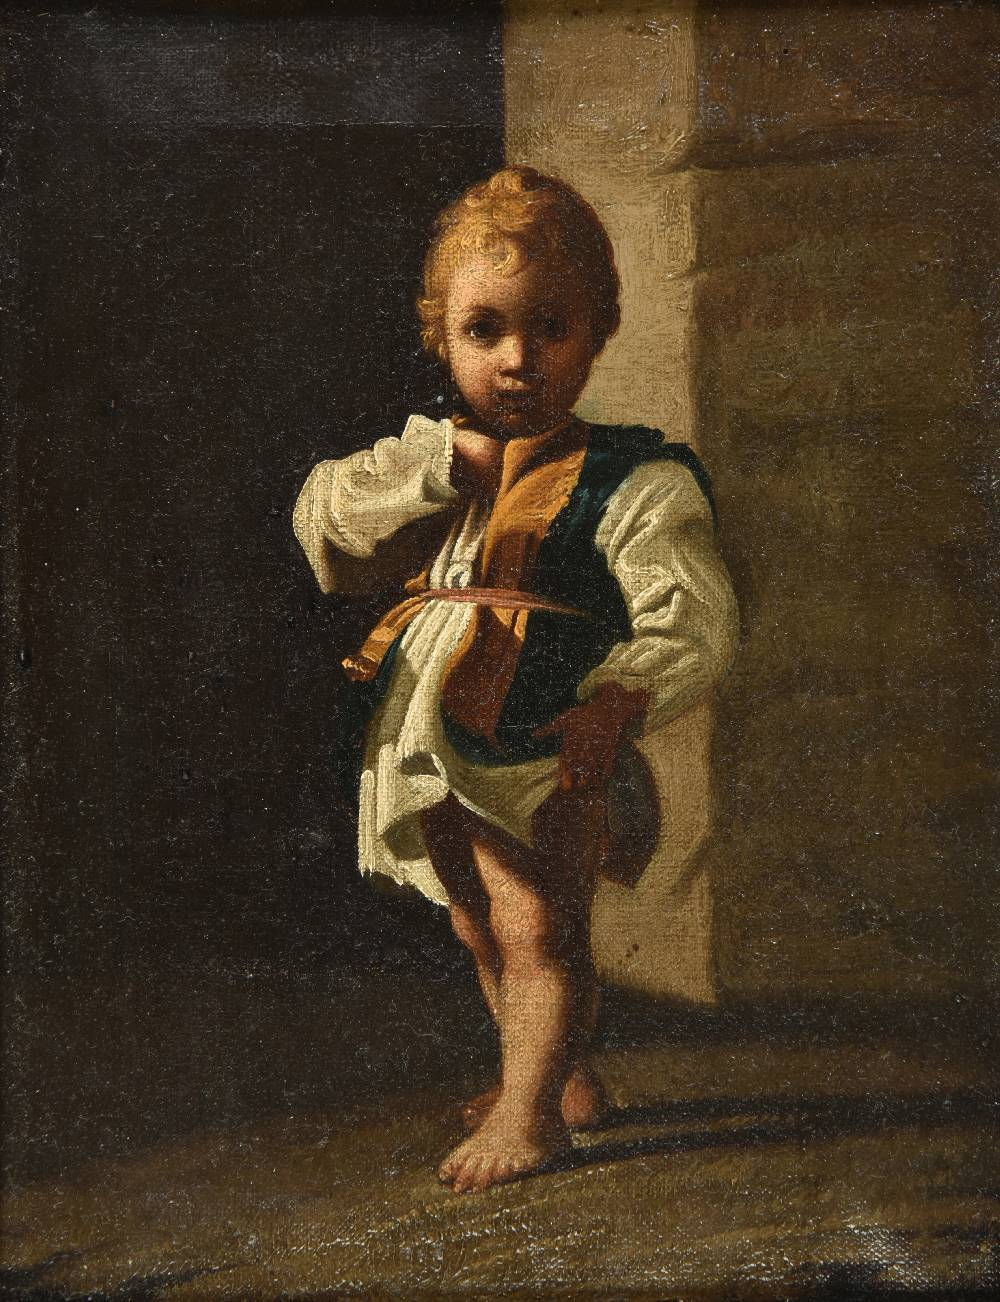 Lot 16 - *French School. Young Boy in an Interior, mid 18th century, oil on canvas, unsigned, indistinctly